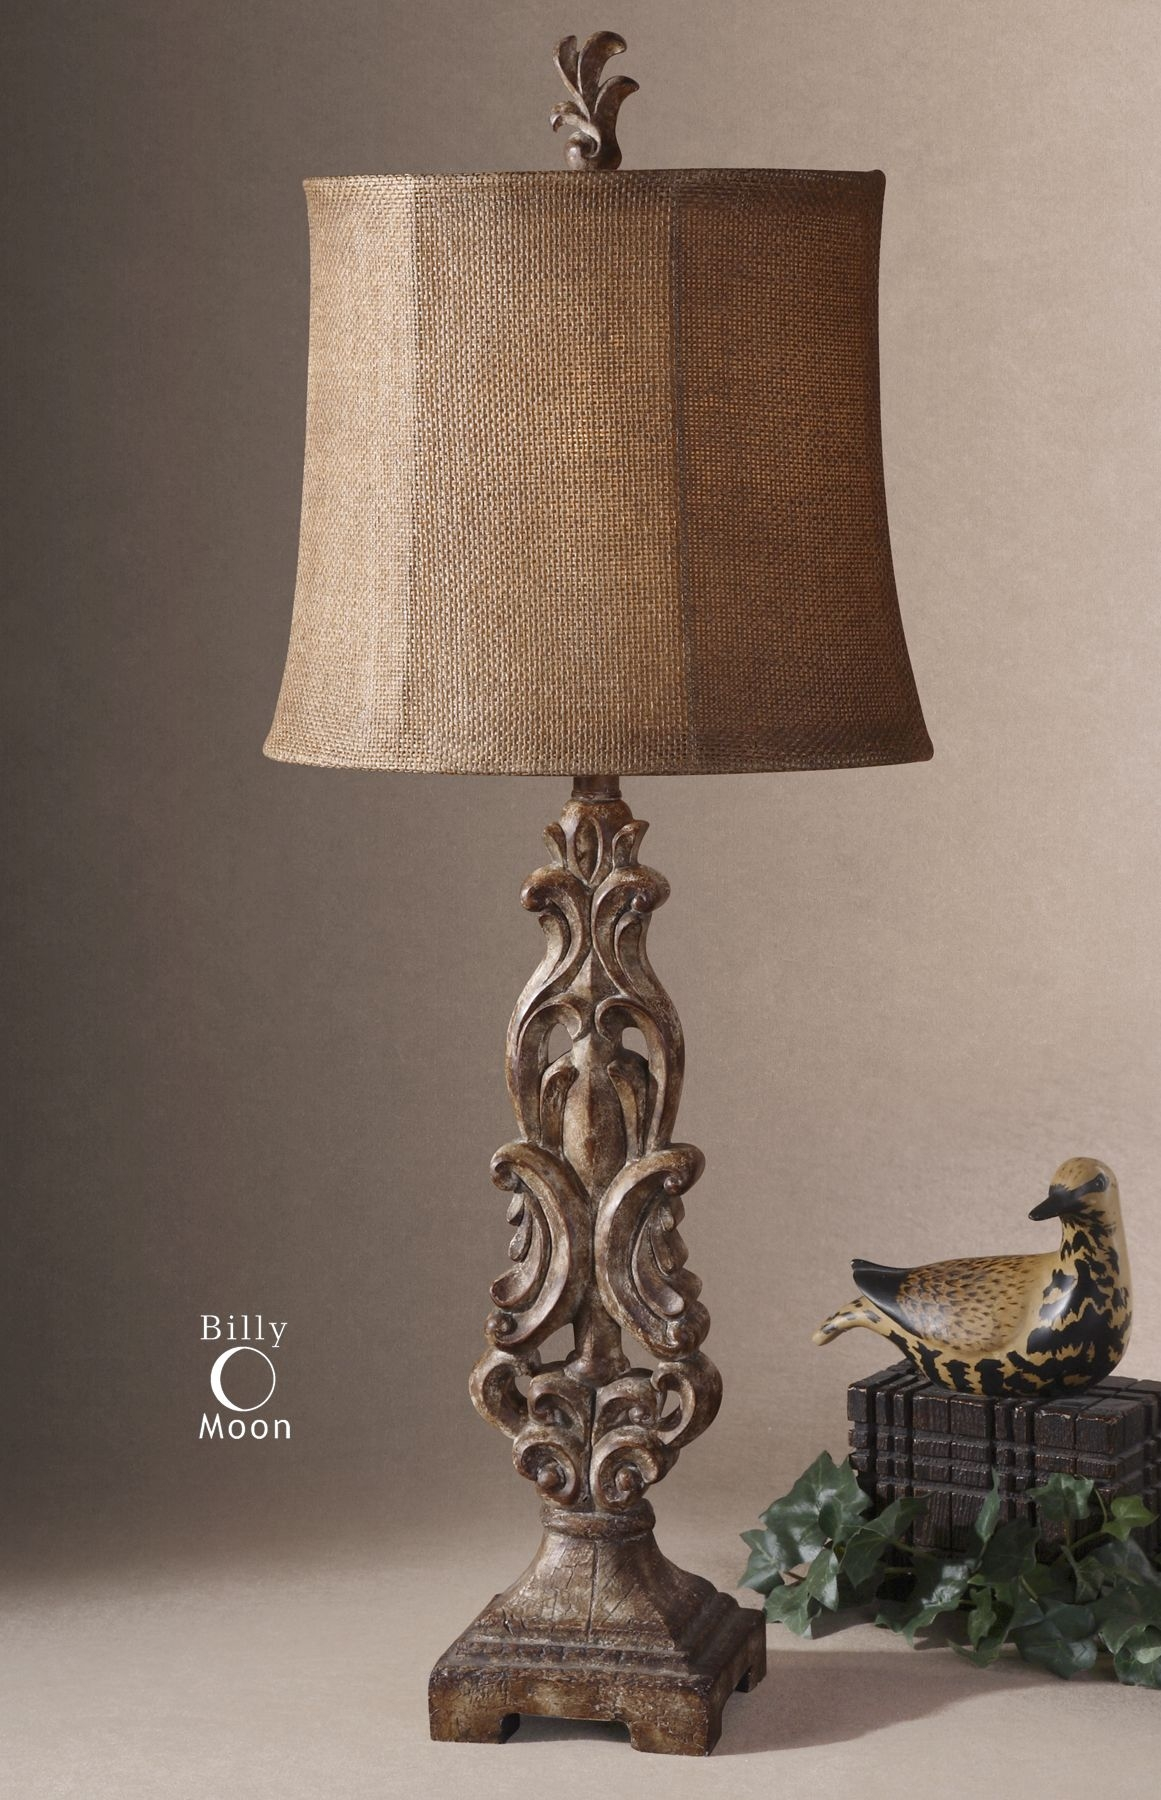 Ornate Scroll Work Old World Italian Table Lamp European Light Neiman Marcus